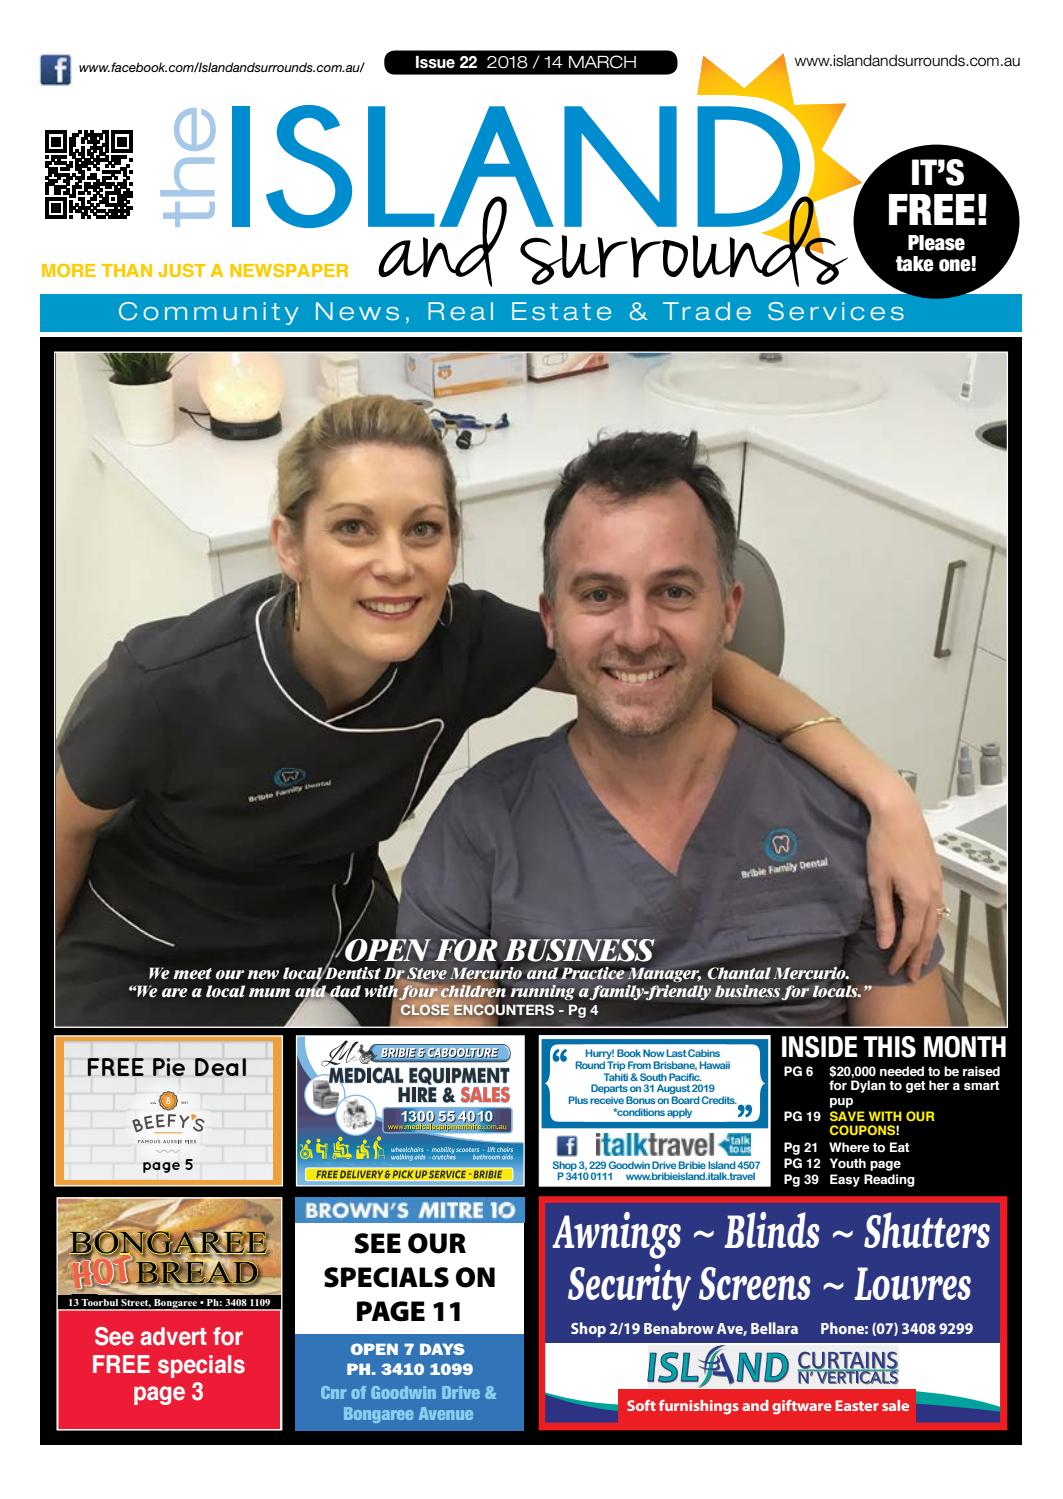 Island And Surrounds Community Newspaper Issue 22 By